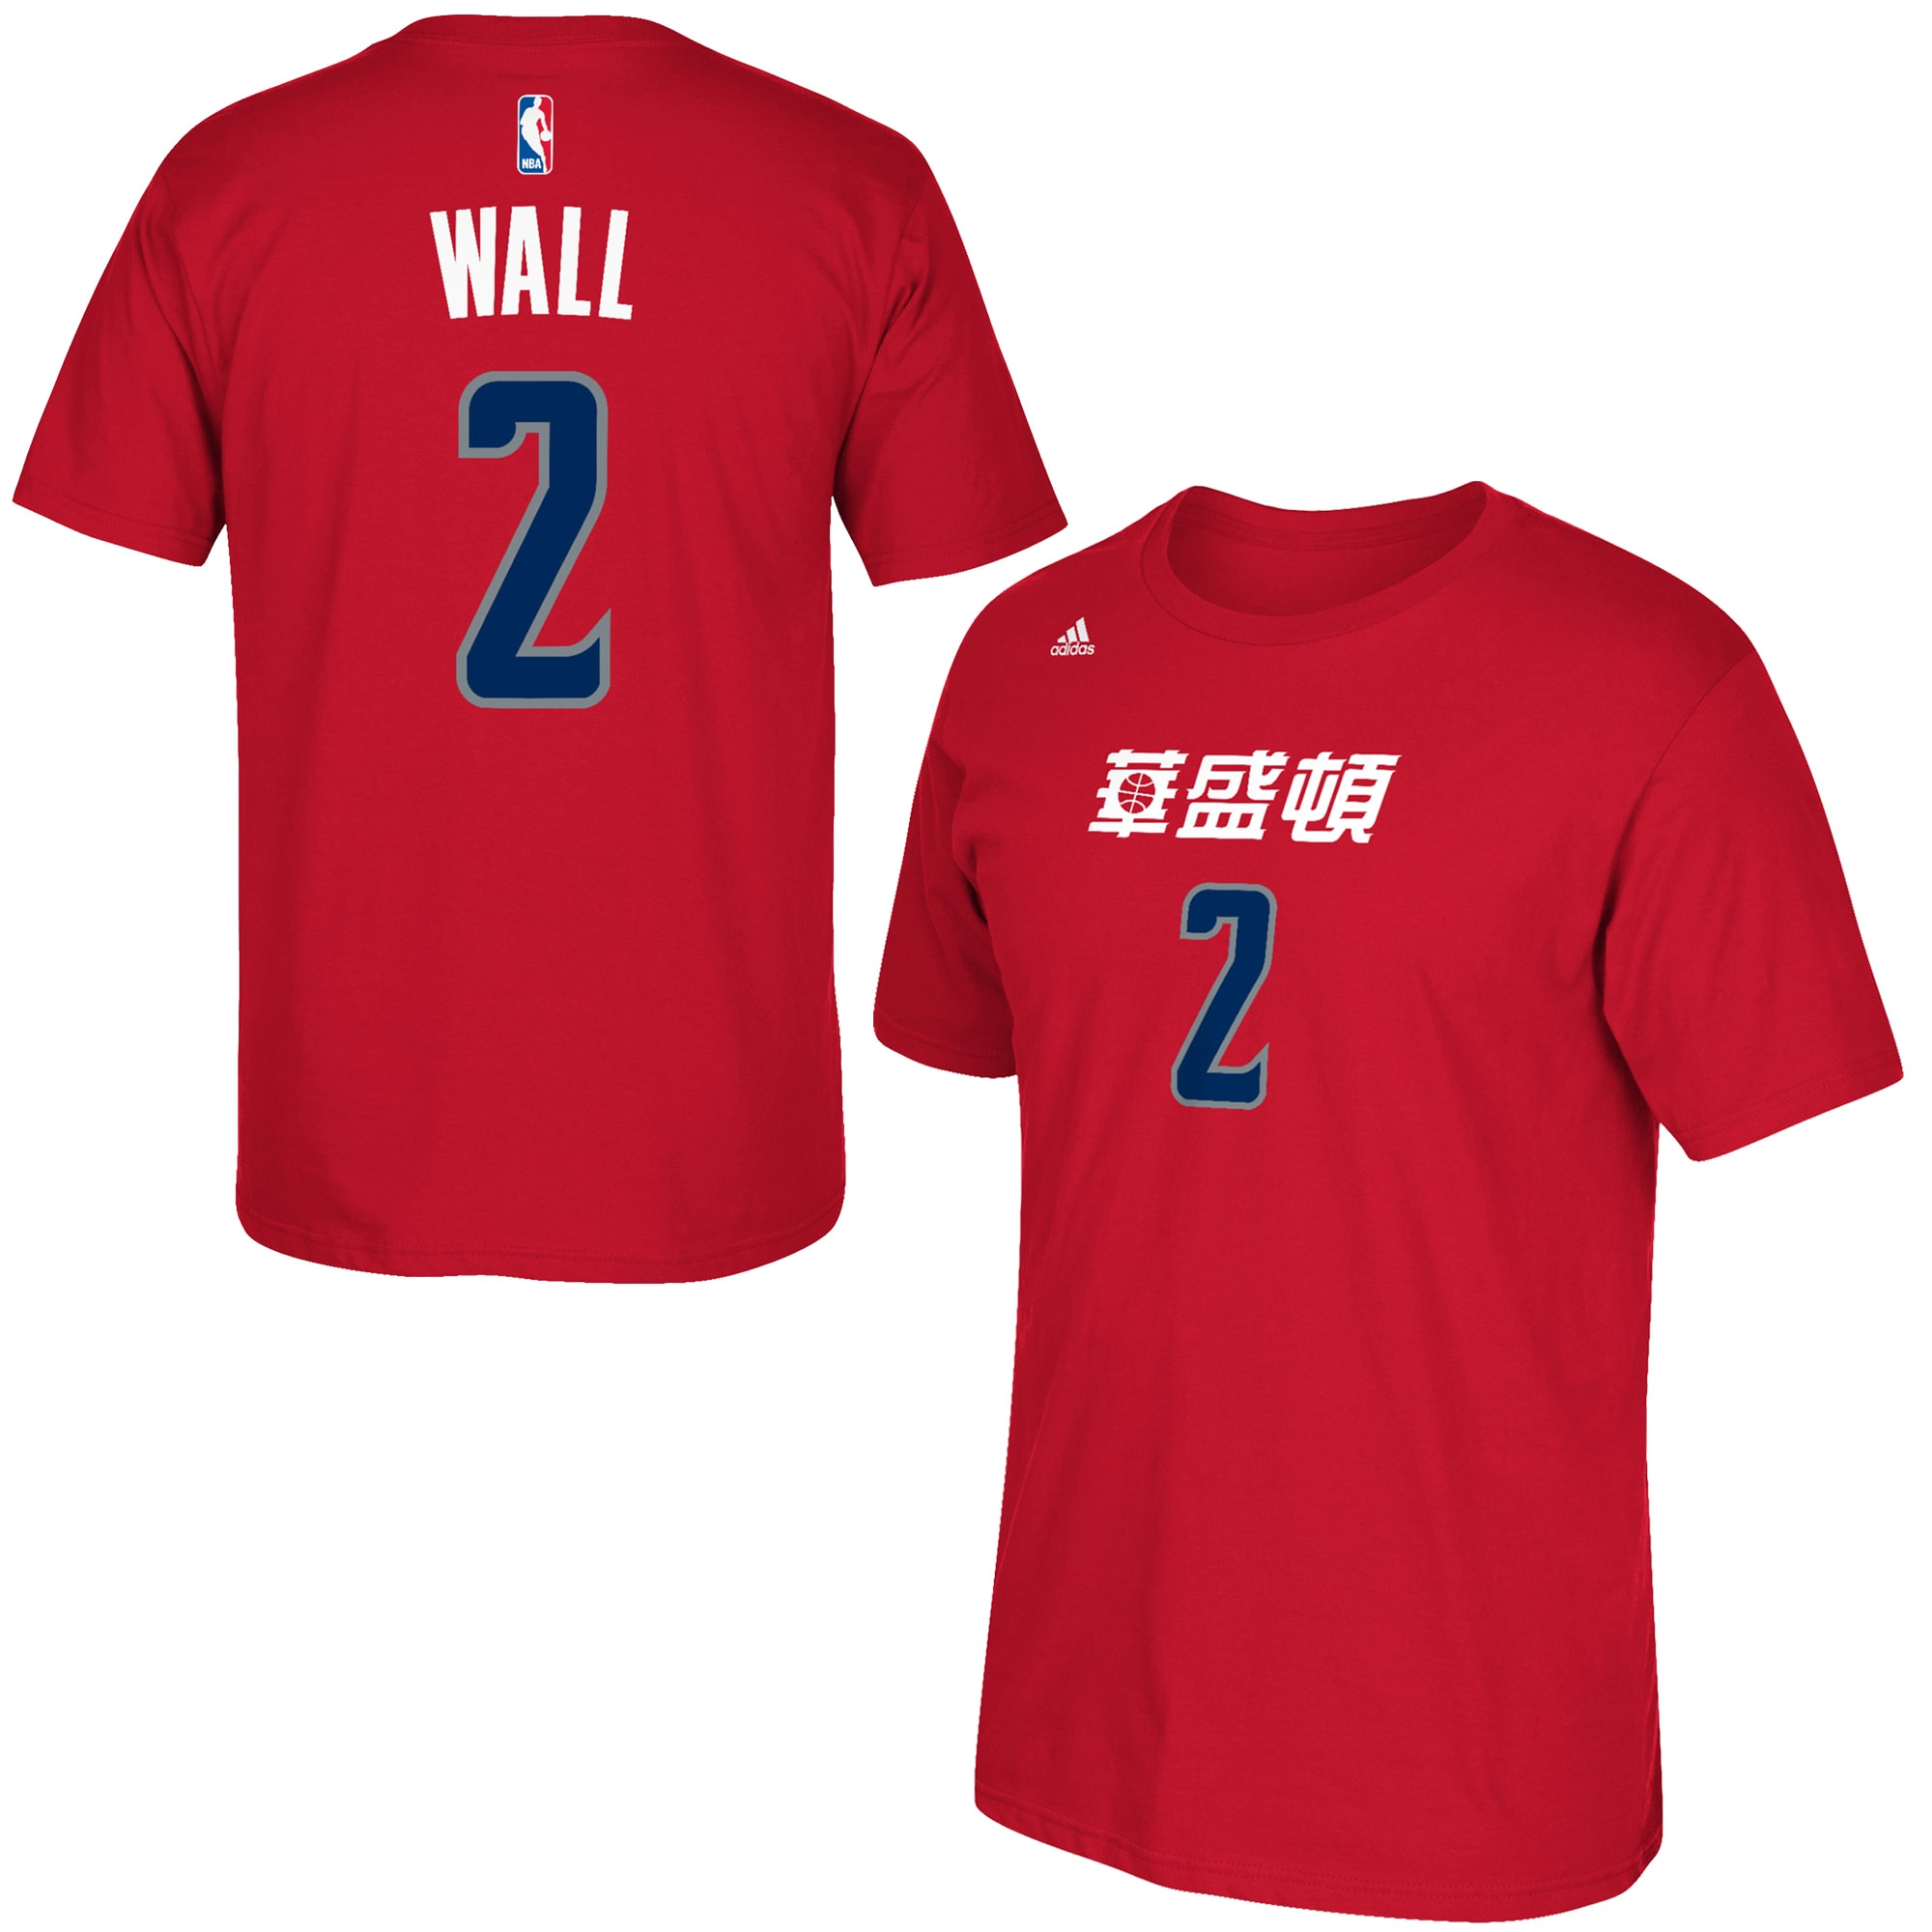 John Wall Washington Wizards adidas 2016 Chinese New Year Name & Number T-Shirt - Red